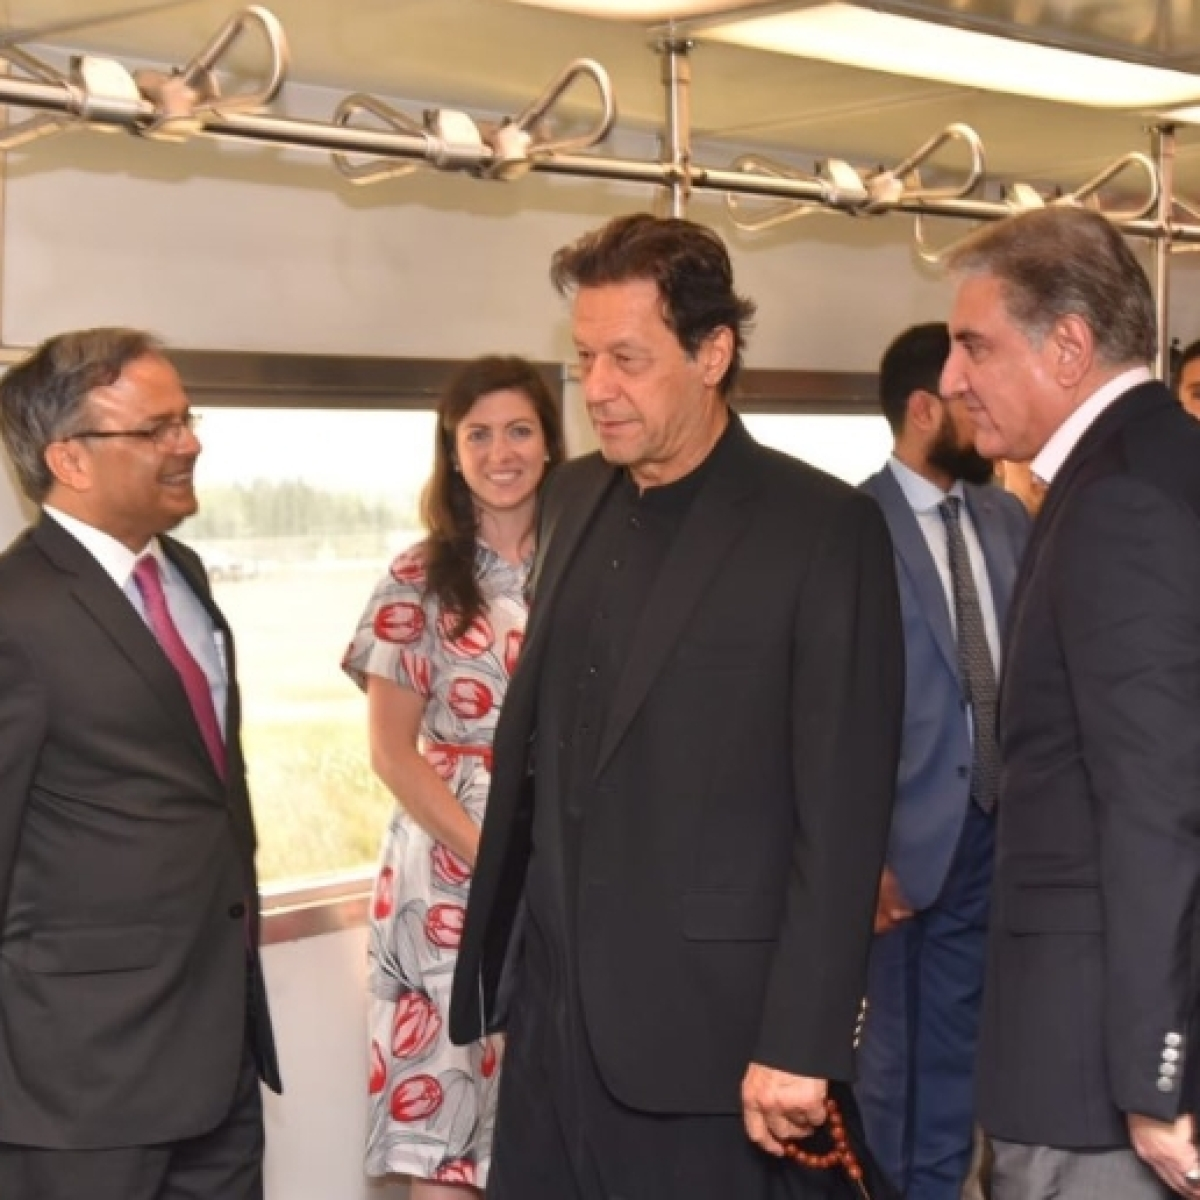 Twitterati troll Pakistan PM Imran Khan for not receiving due welcome at US airport